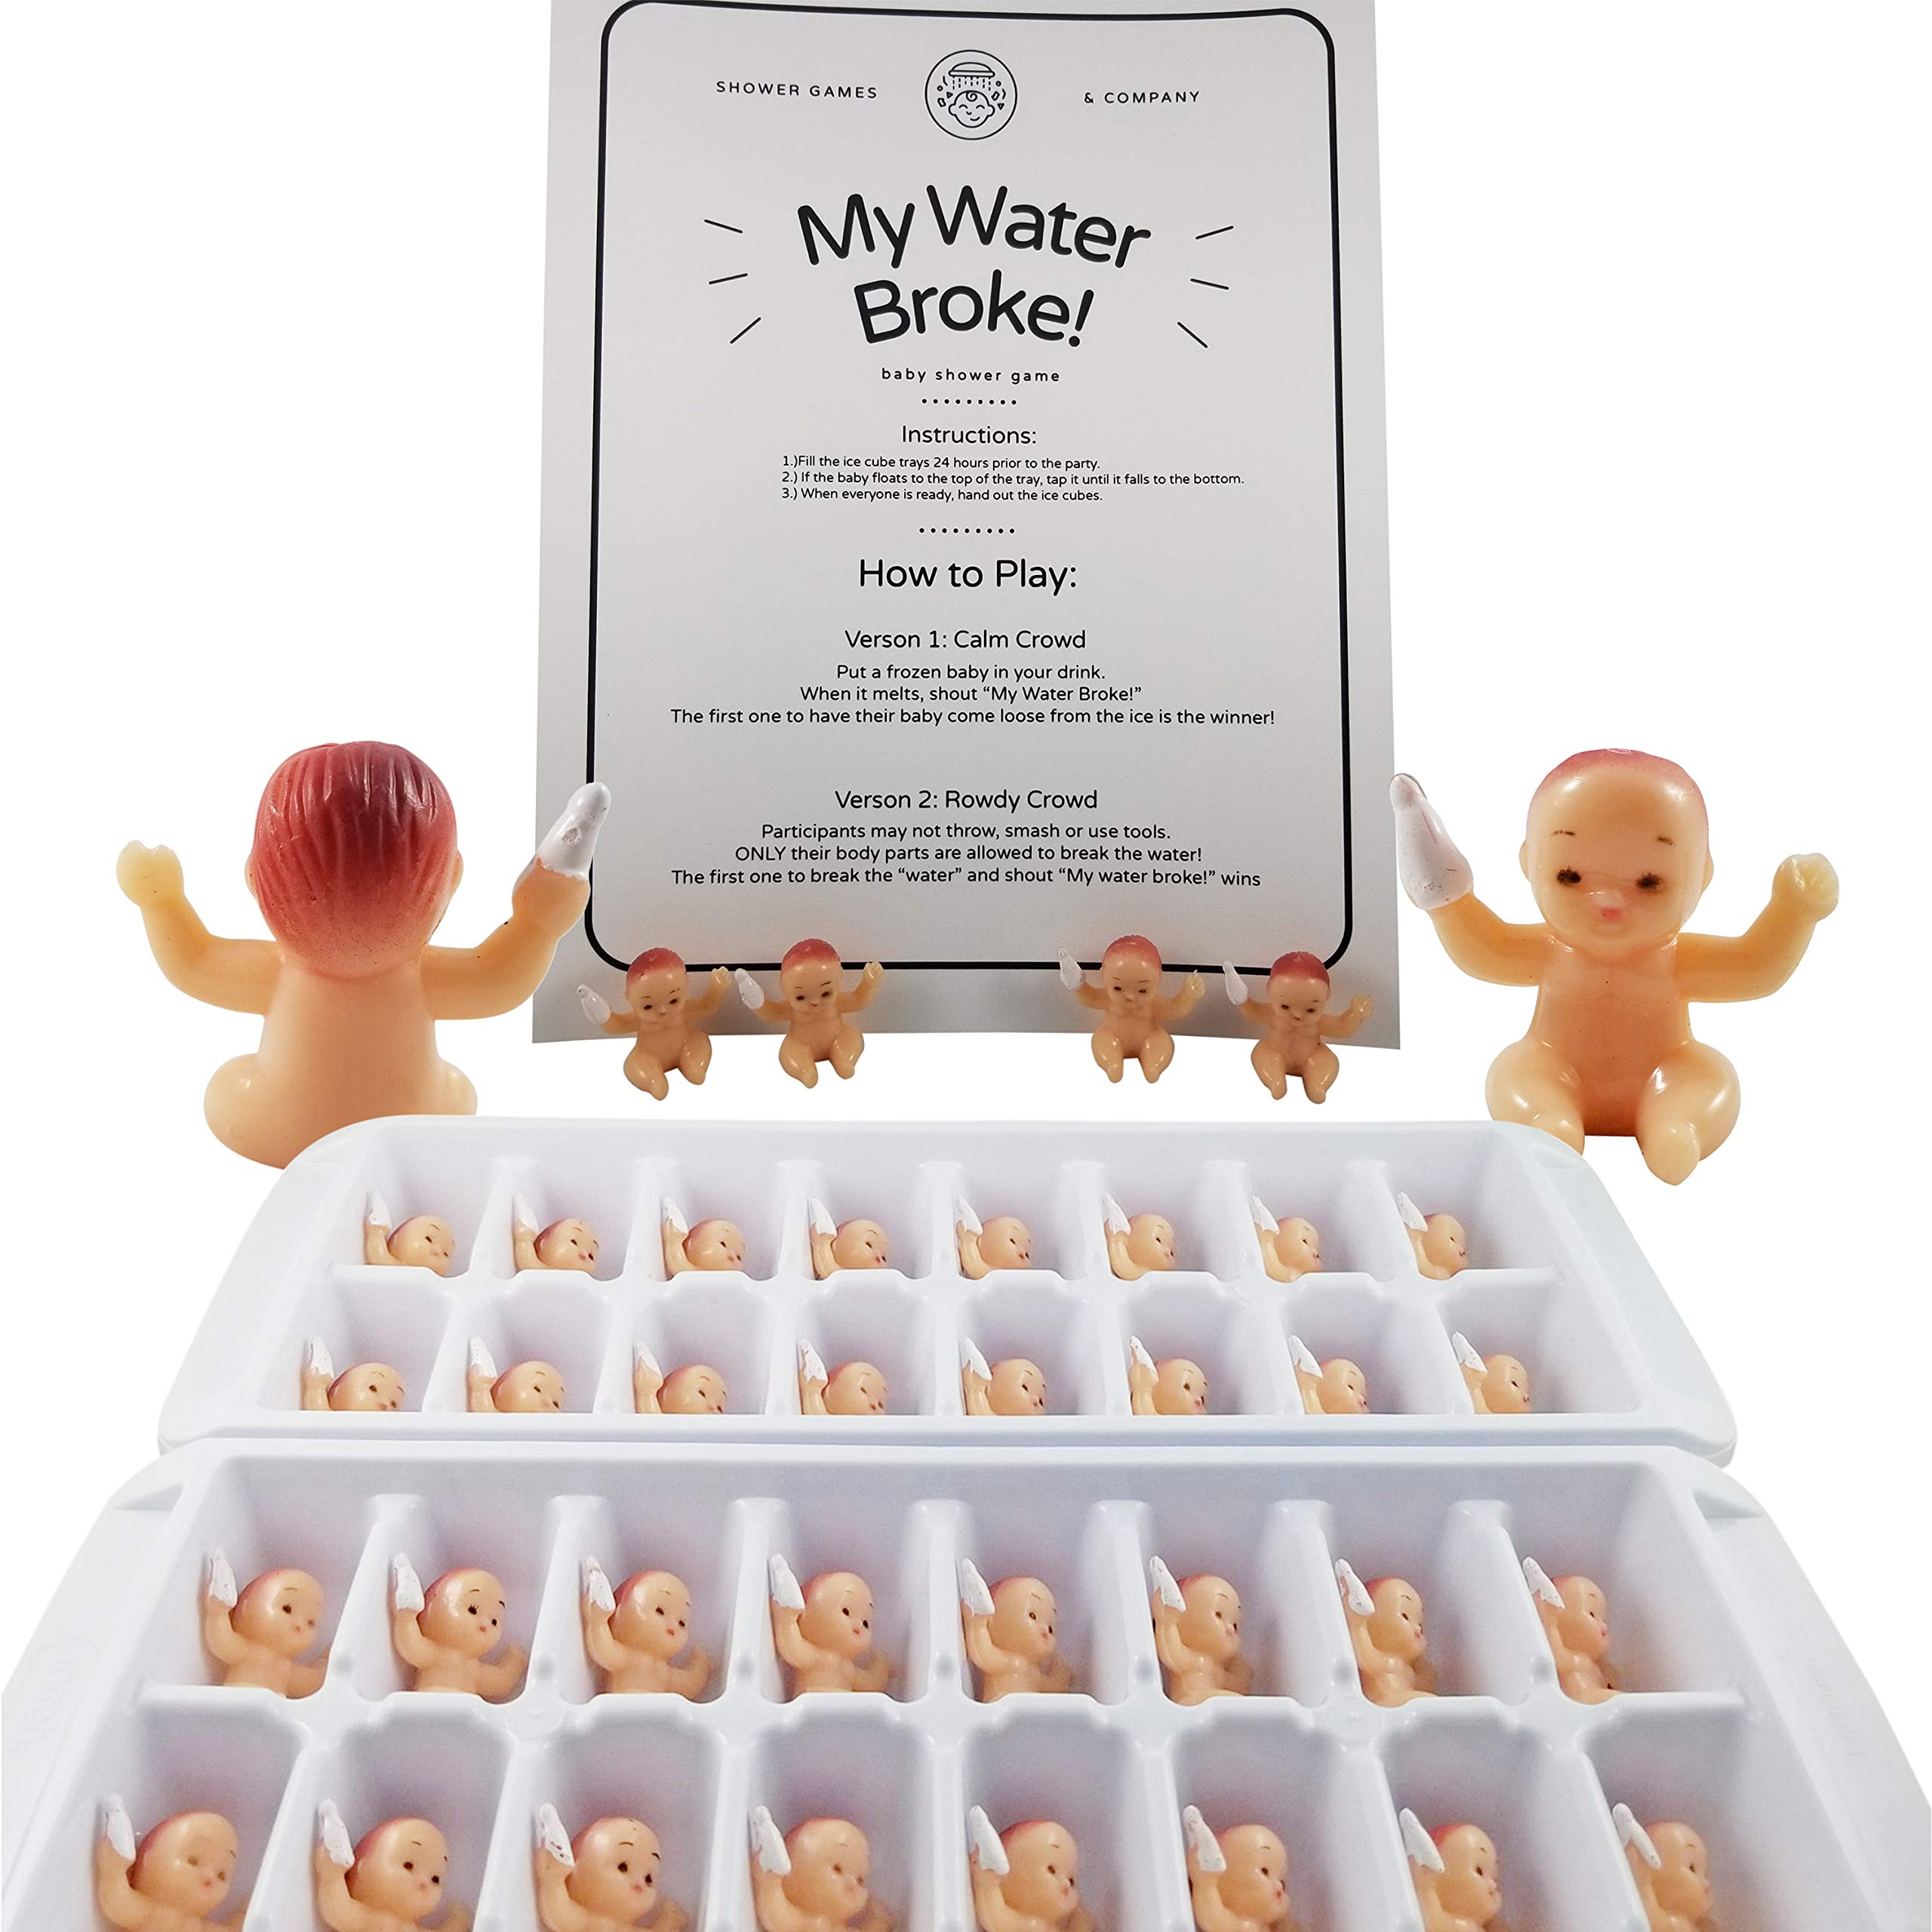 My Water Broke Baby Shower Game with Tiny Babies for Ice Cubes, Caucasian, 32 People